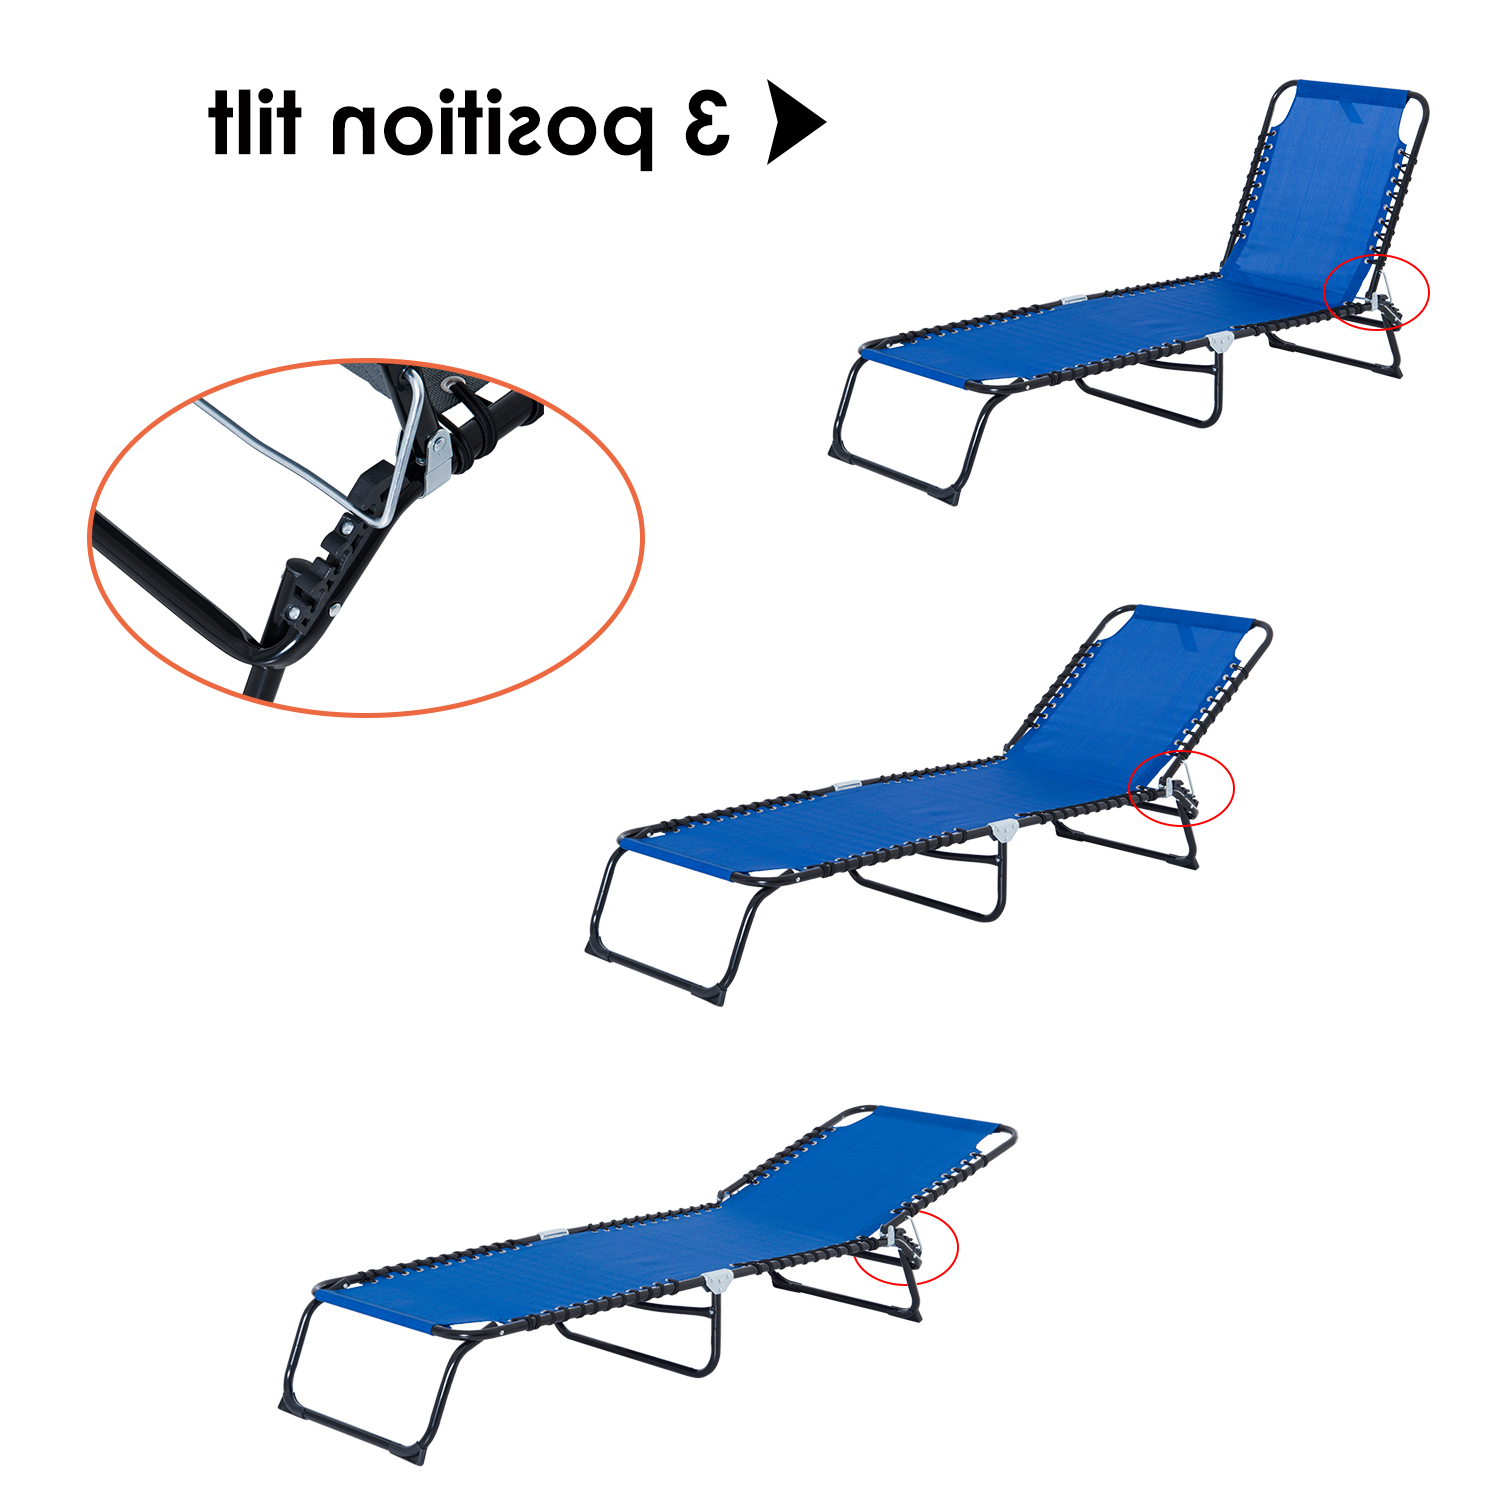 Details About 3 Position Portable Reclining Beach Chaise Lounge Adjustable Sleeping Bed Within Most Recently Released 3 Position Portable Reclining Beach Chaise Lounges (View 25 of 25)